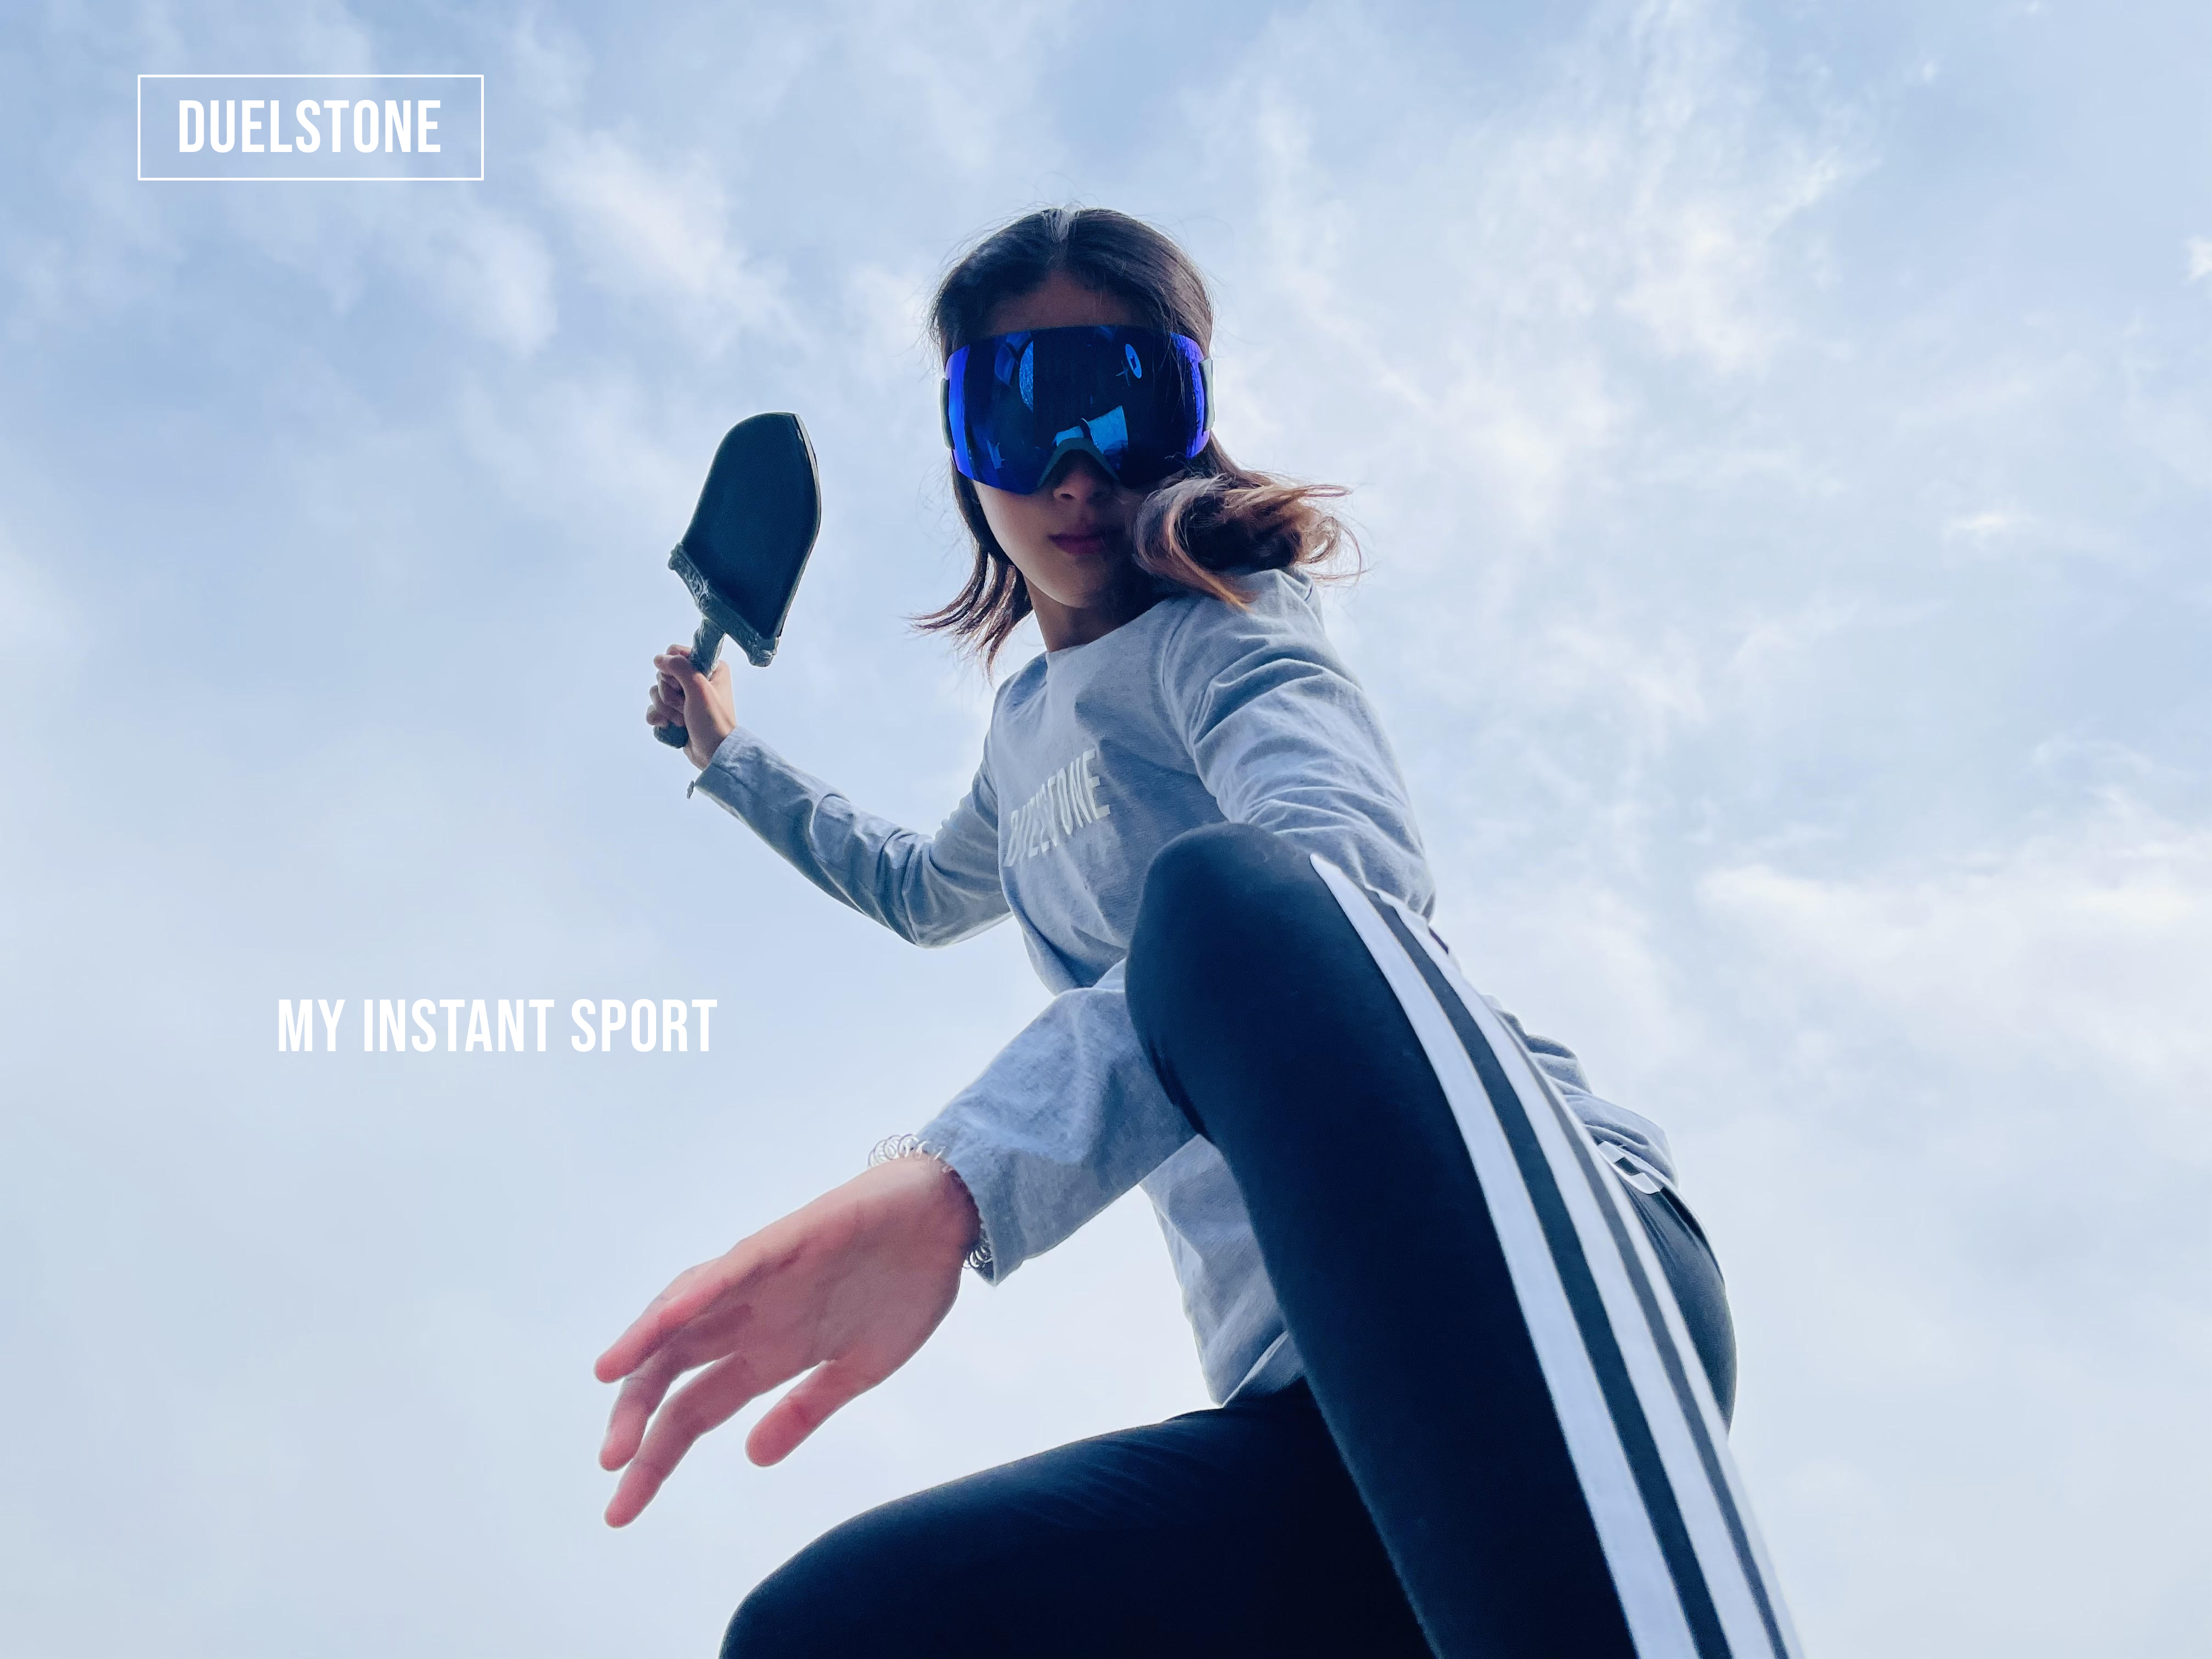 Cambridge designed Duelstone raises funds to become the world's most popular instant sport.